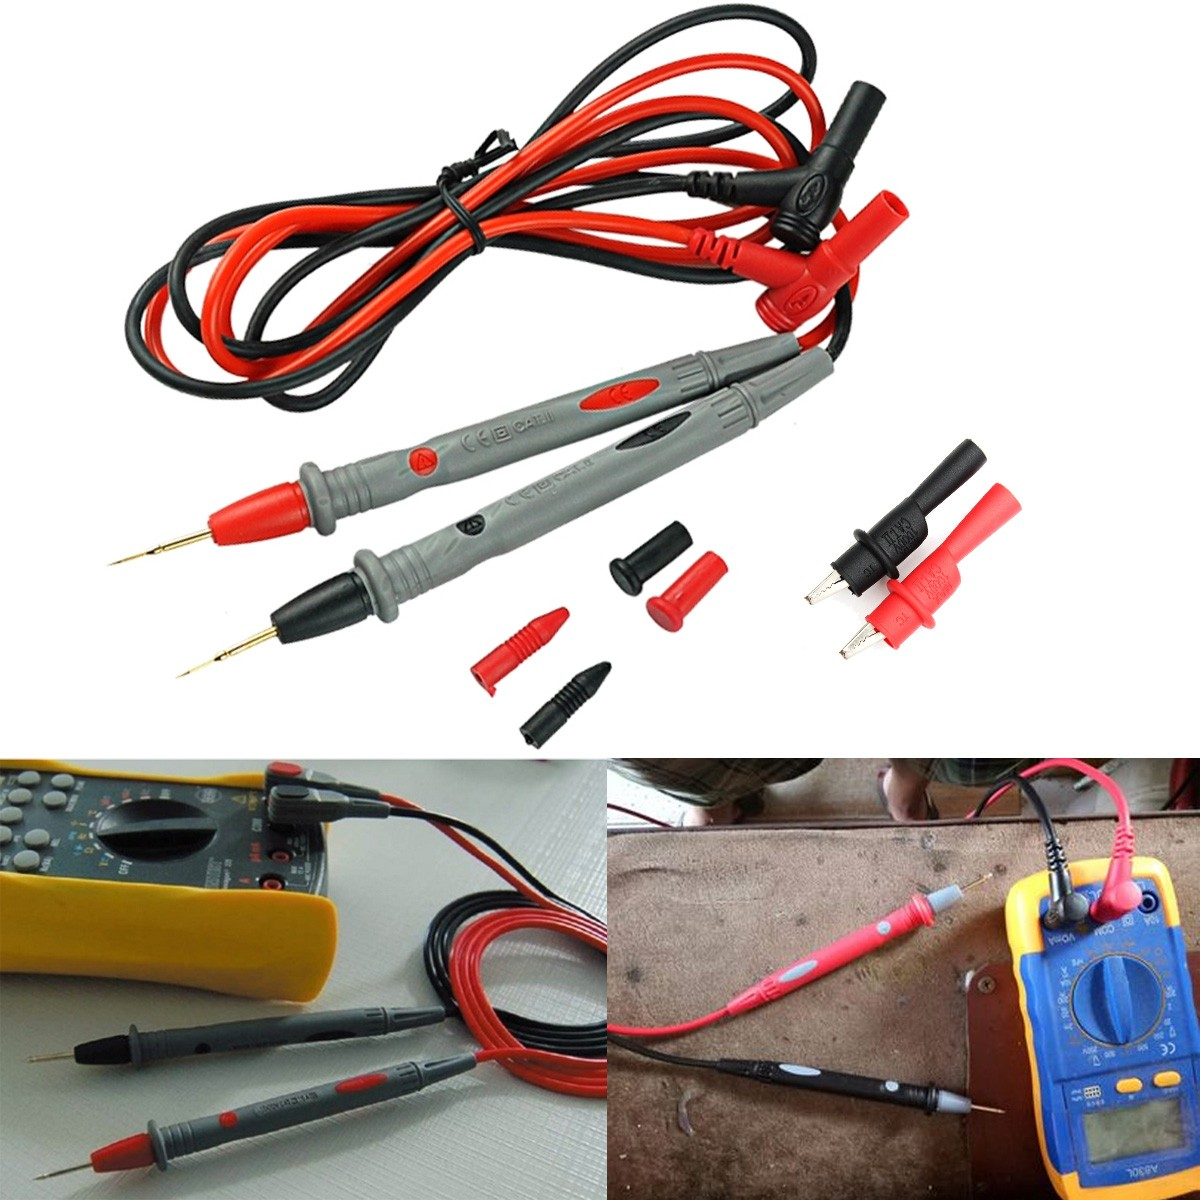 Image 3 - 20A Probe Test Lead+Alloy Clips Clamp Cable Wire Test For Multi Meter Tester Digital Multimeter 2019 New Arrival-in Multimeters from Tools